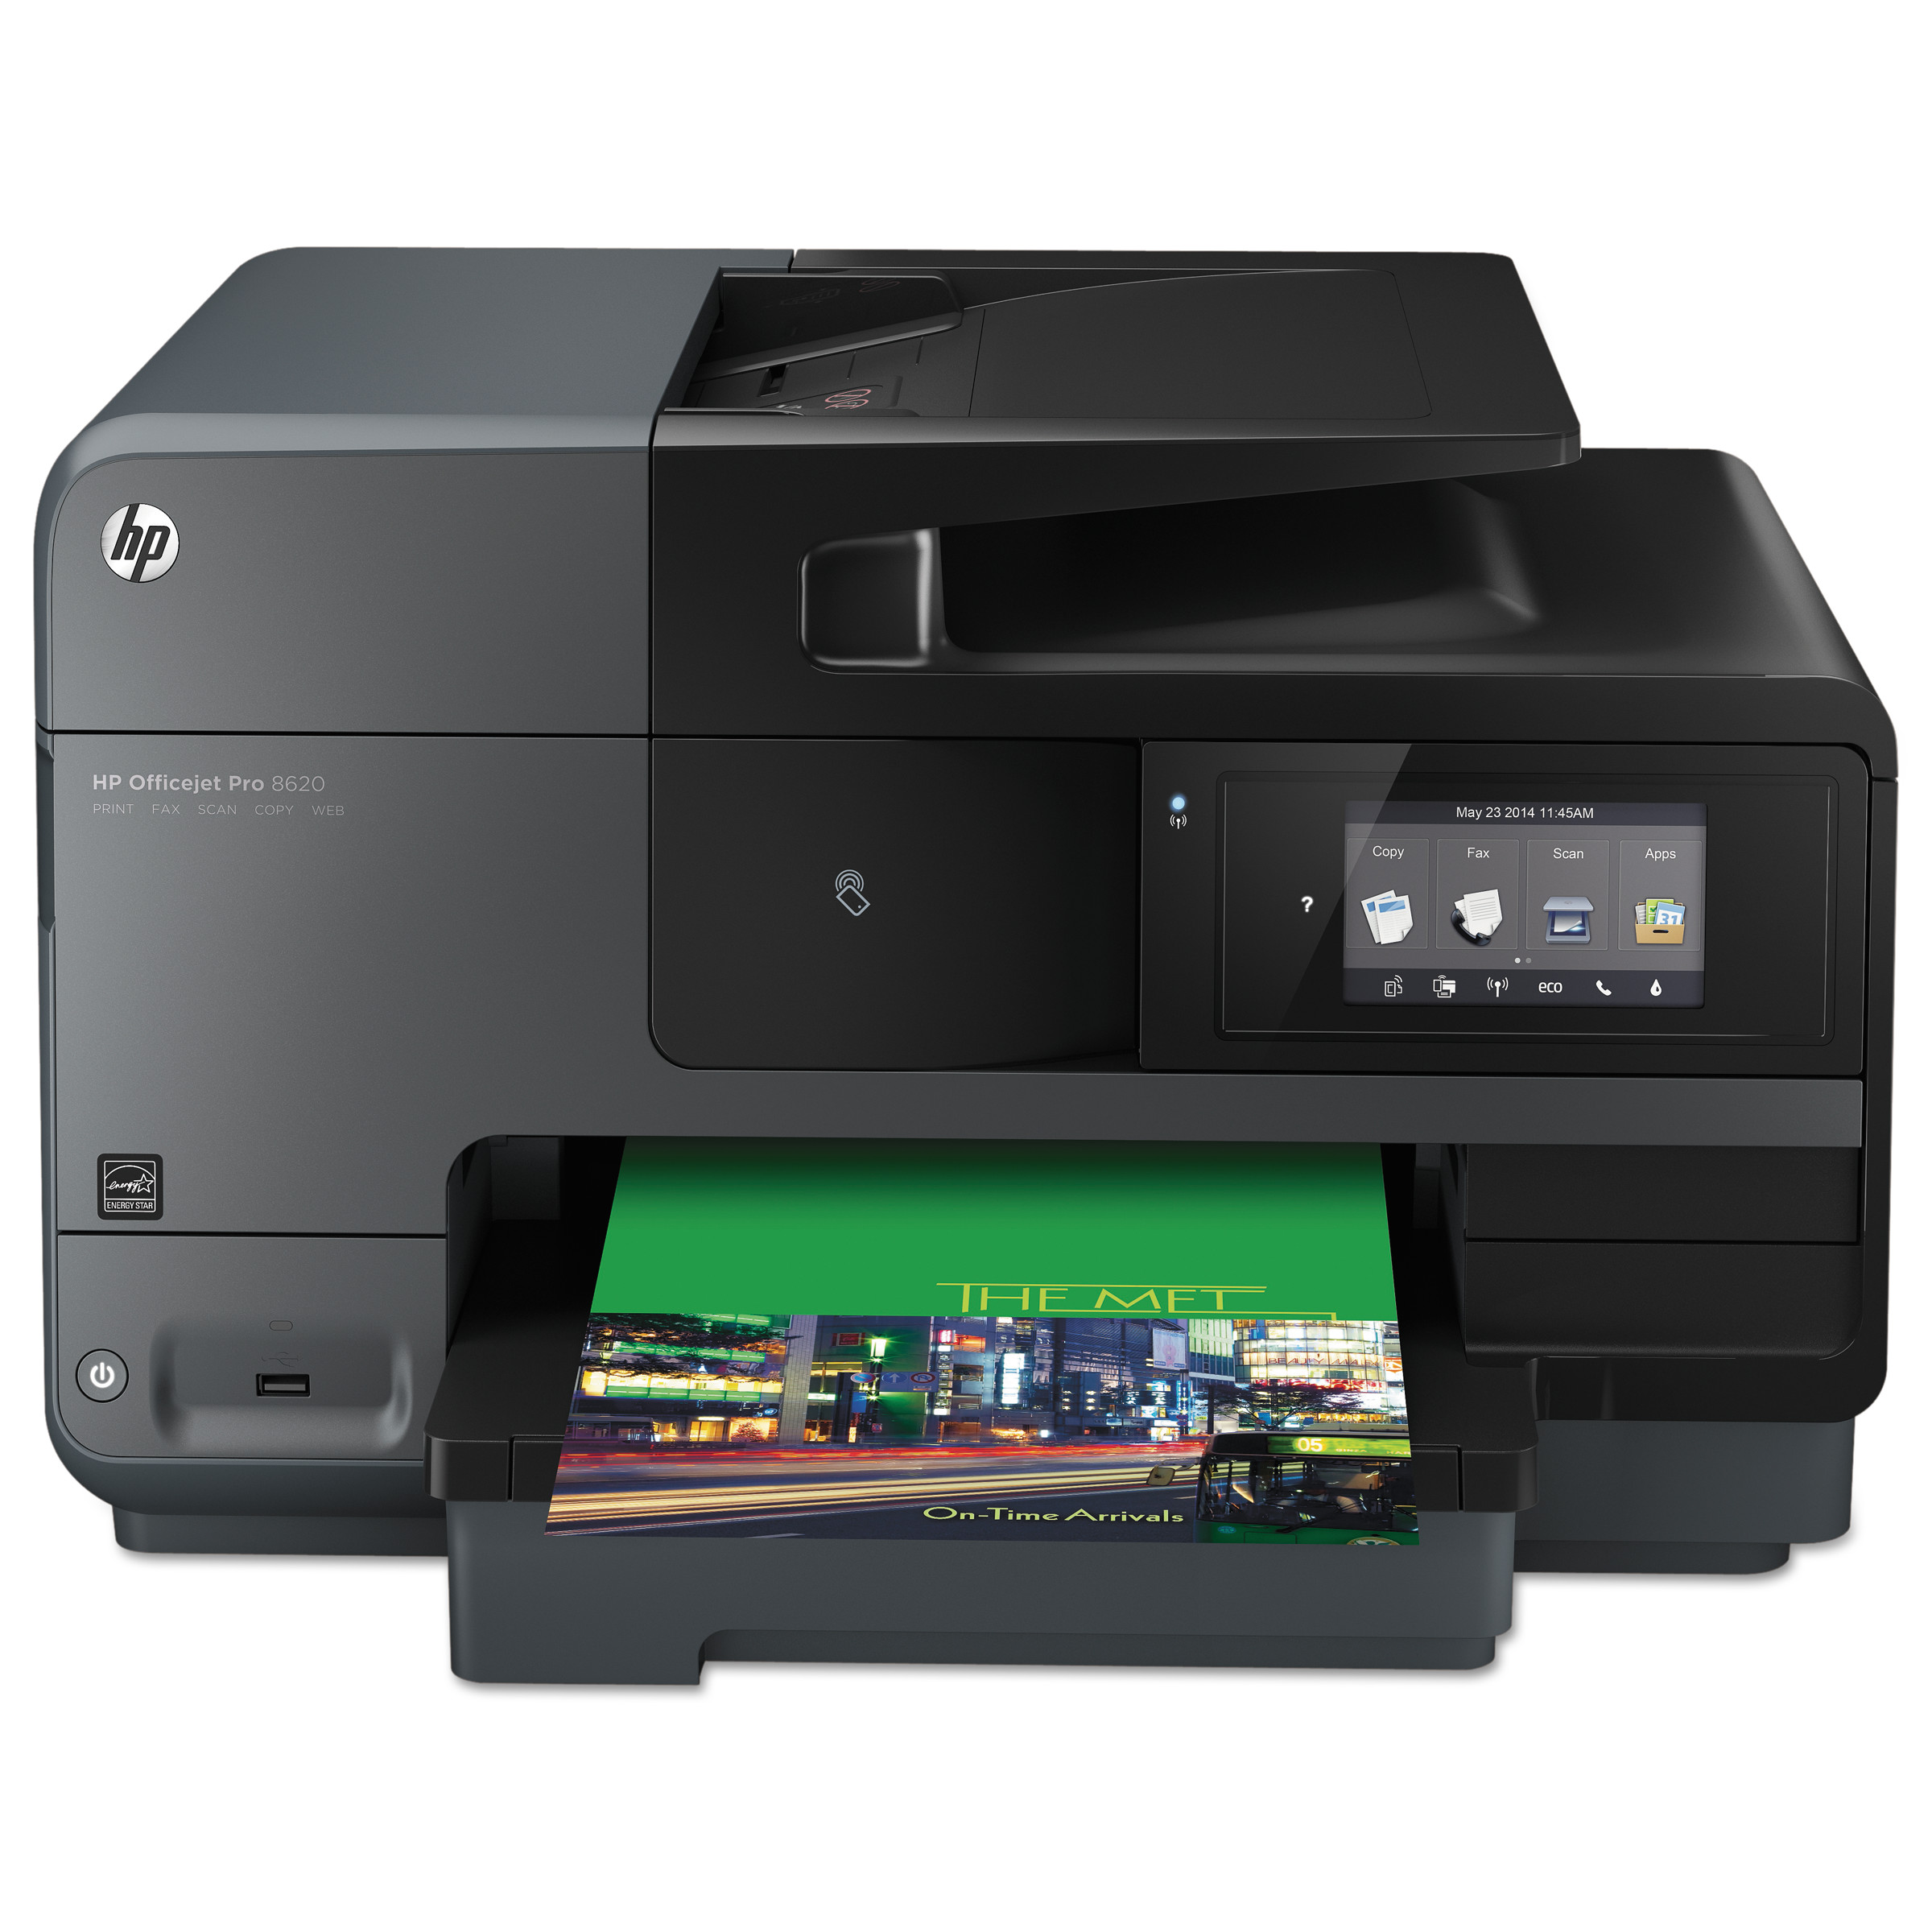 HP Officejet Pro 8620 e-All-in-One Wireless Inkjet Printer, Copy Fax Print Scan by HP